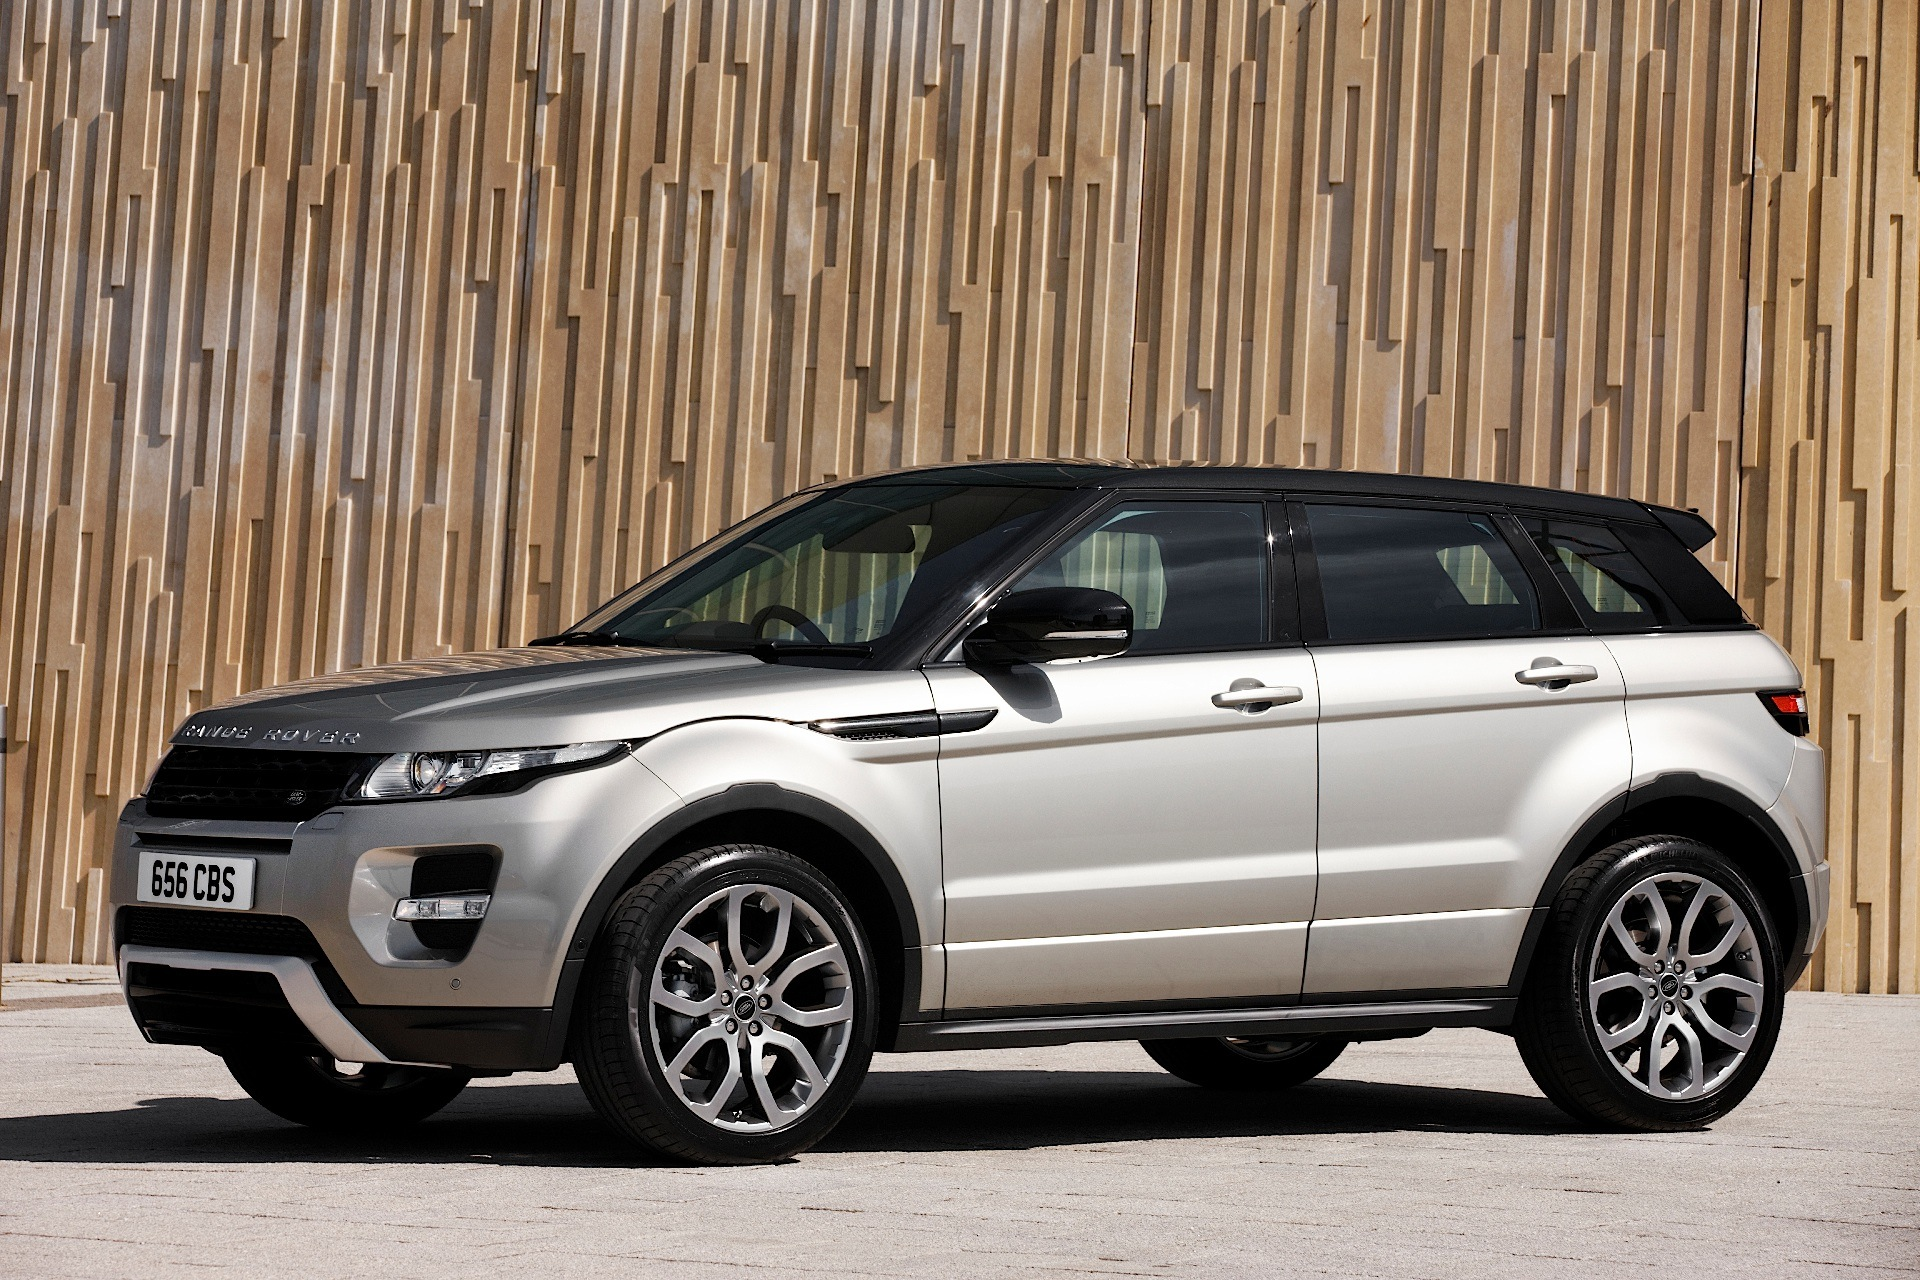 LAND ROVER Range Rover Evoque 5 Door specs 2011 2012 2013